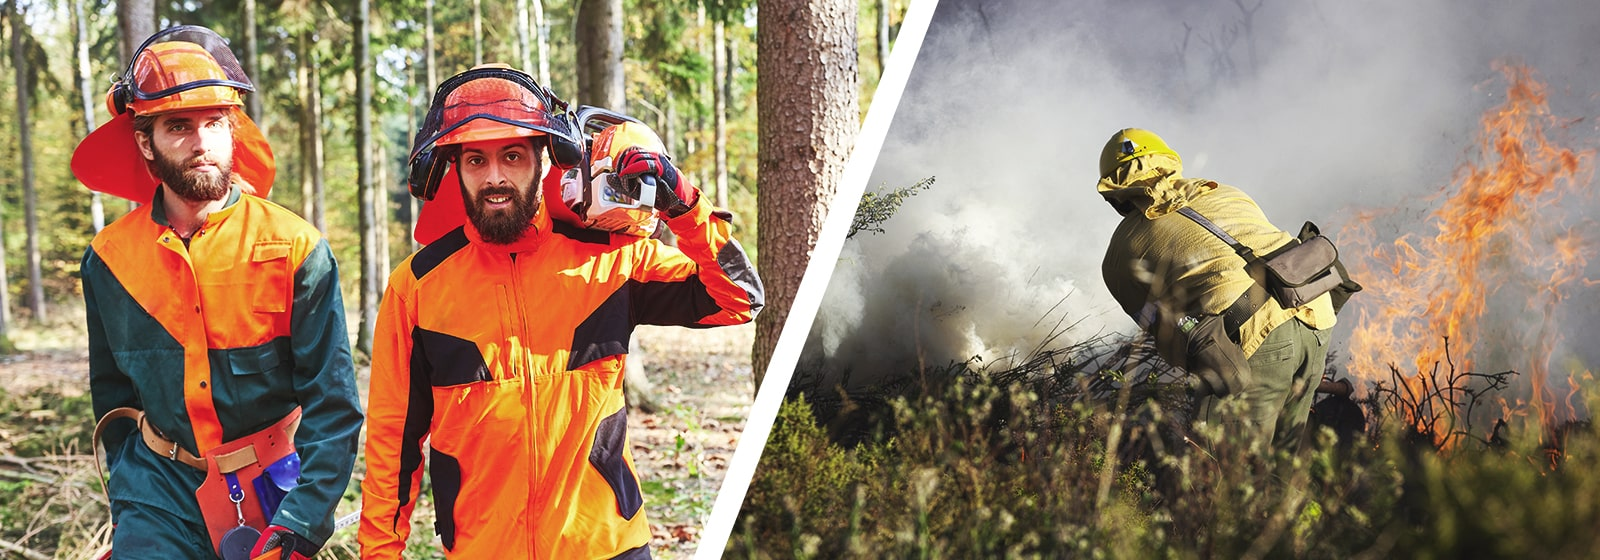 firefighting and forestry business for sale in western canada